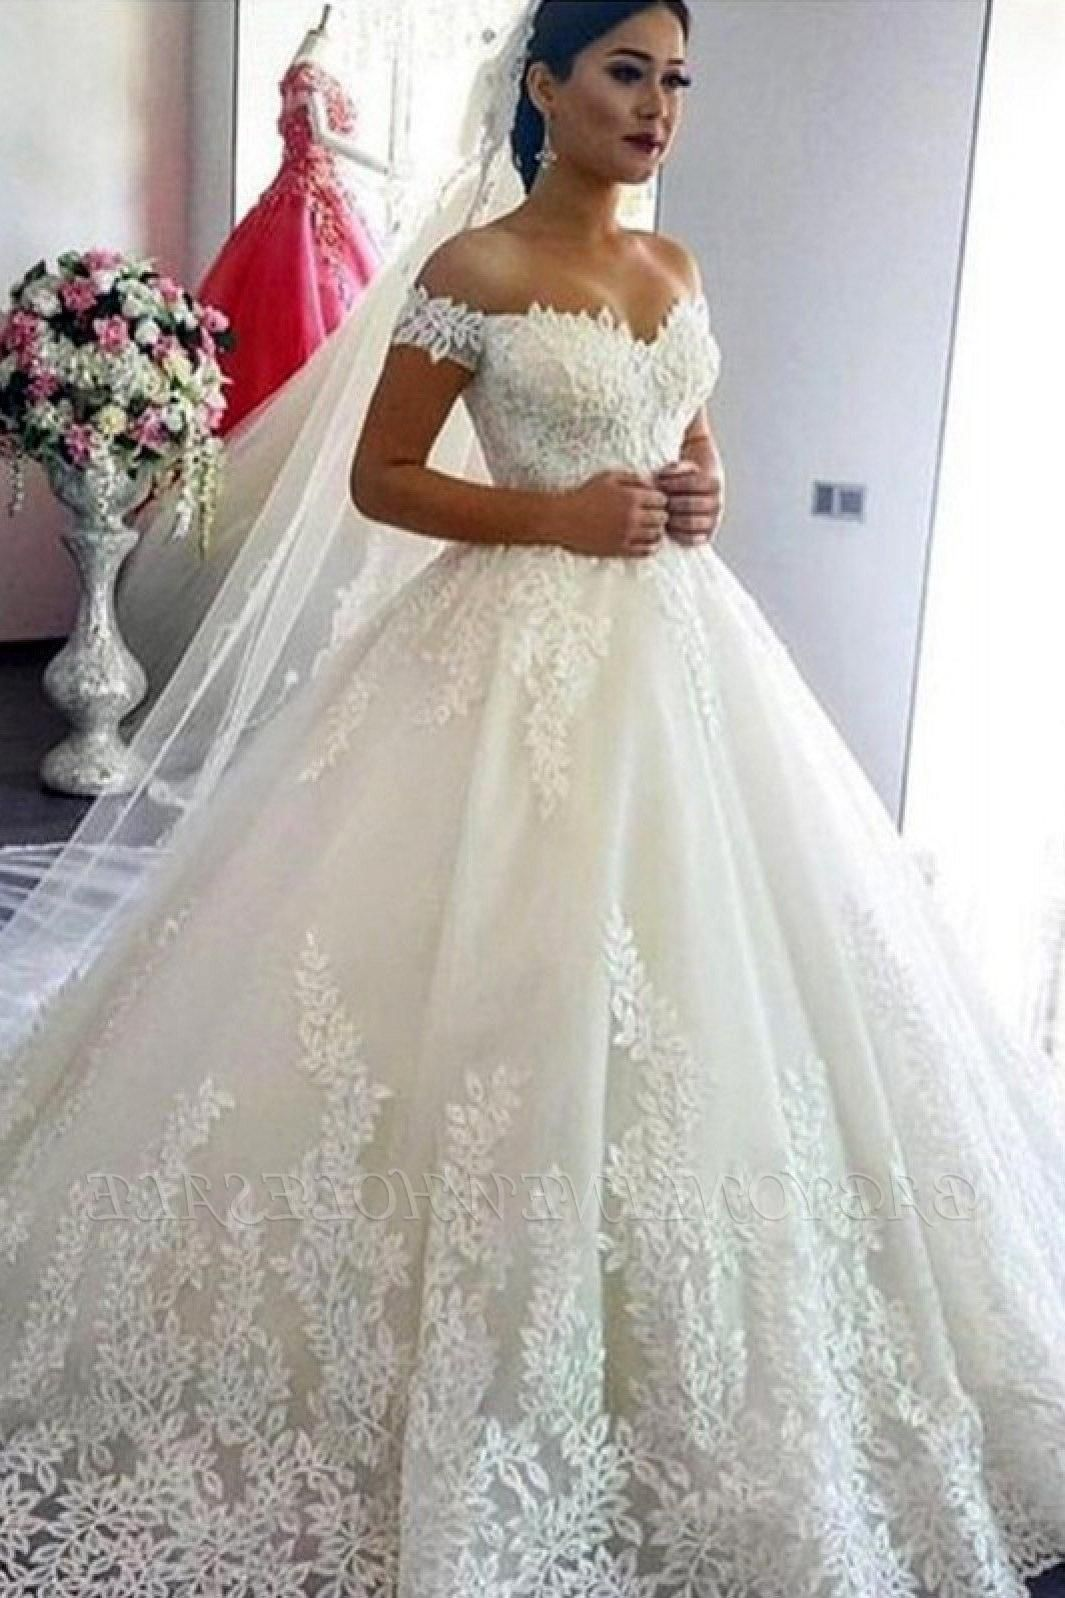 Wedding Dresses Princess Satin Lace Sweetheart Wedding Dress Lace Bridal Gown Ball Gowns [ 1598 x 1065 Pixel ]